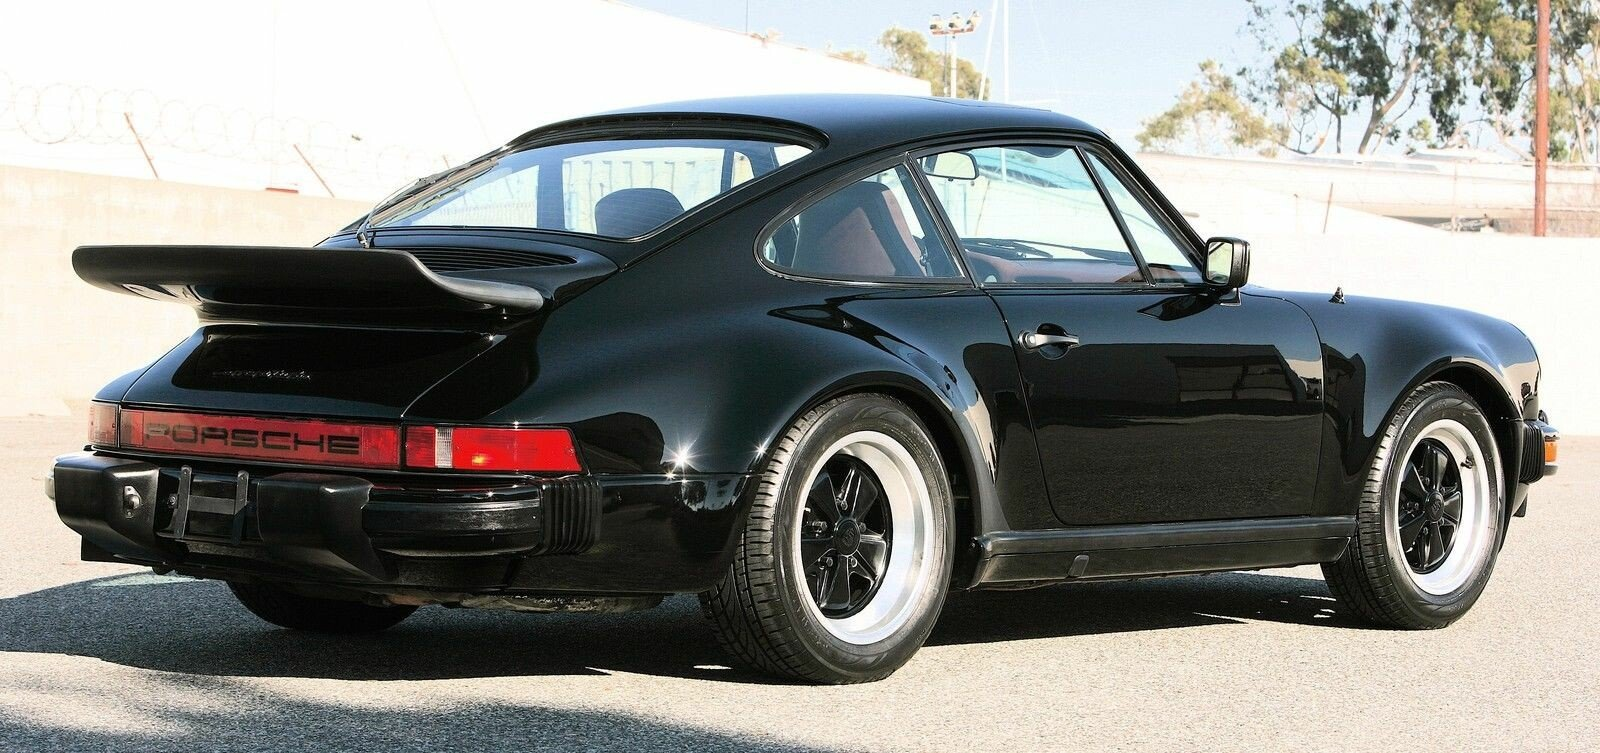 1977 Porsche 911 Classics For Sale On Autotrader 1930 Chevrolet Wiring Diagram